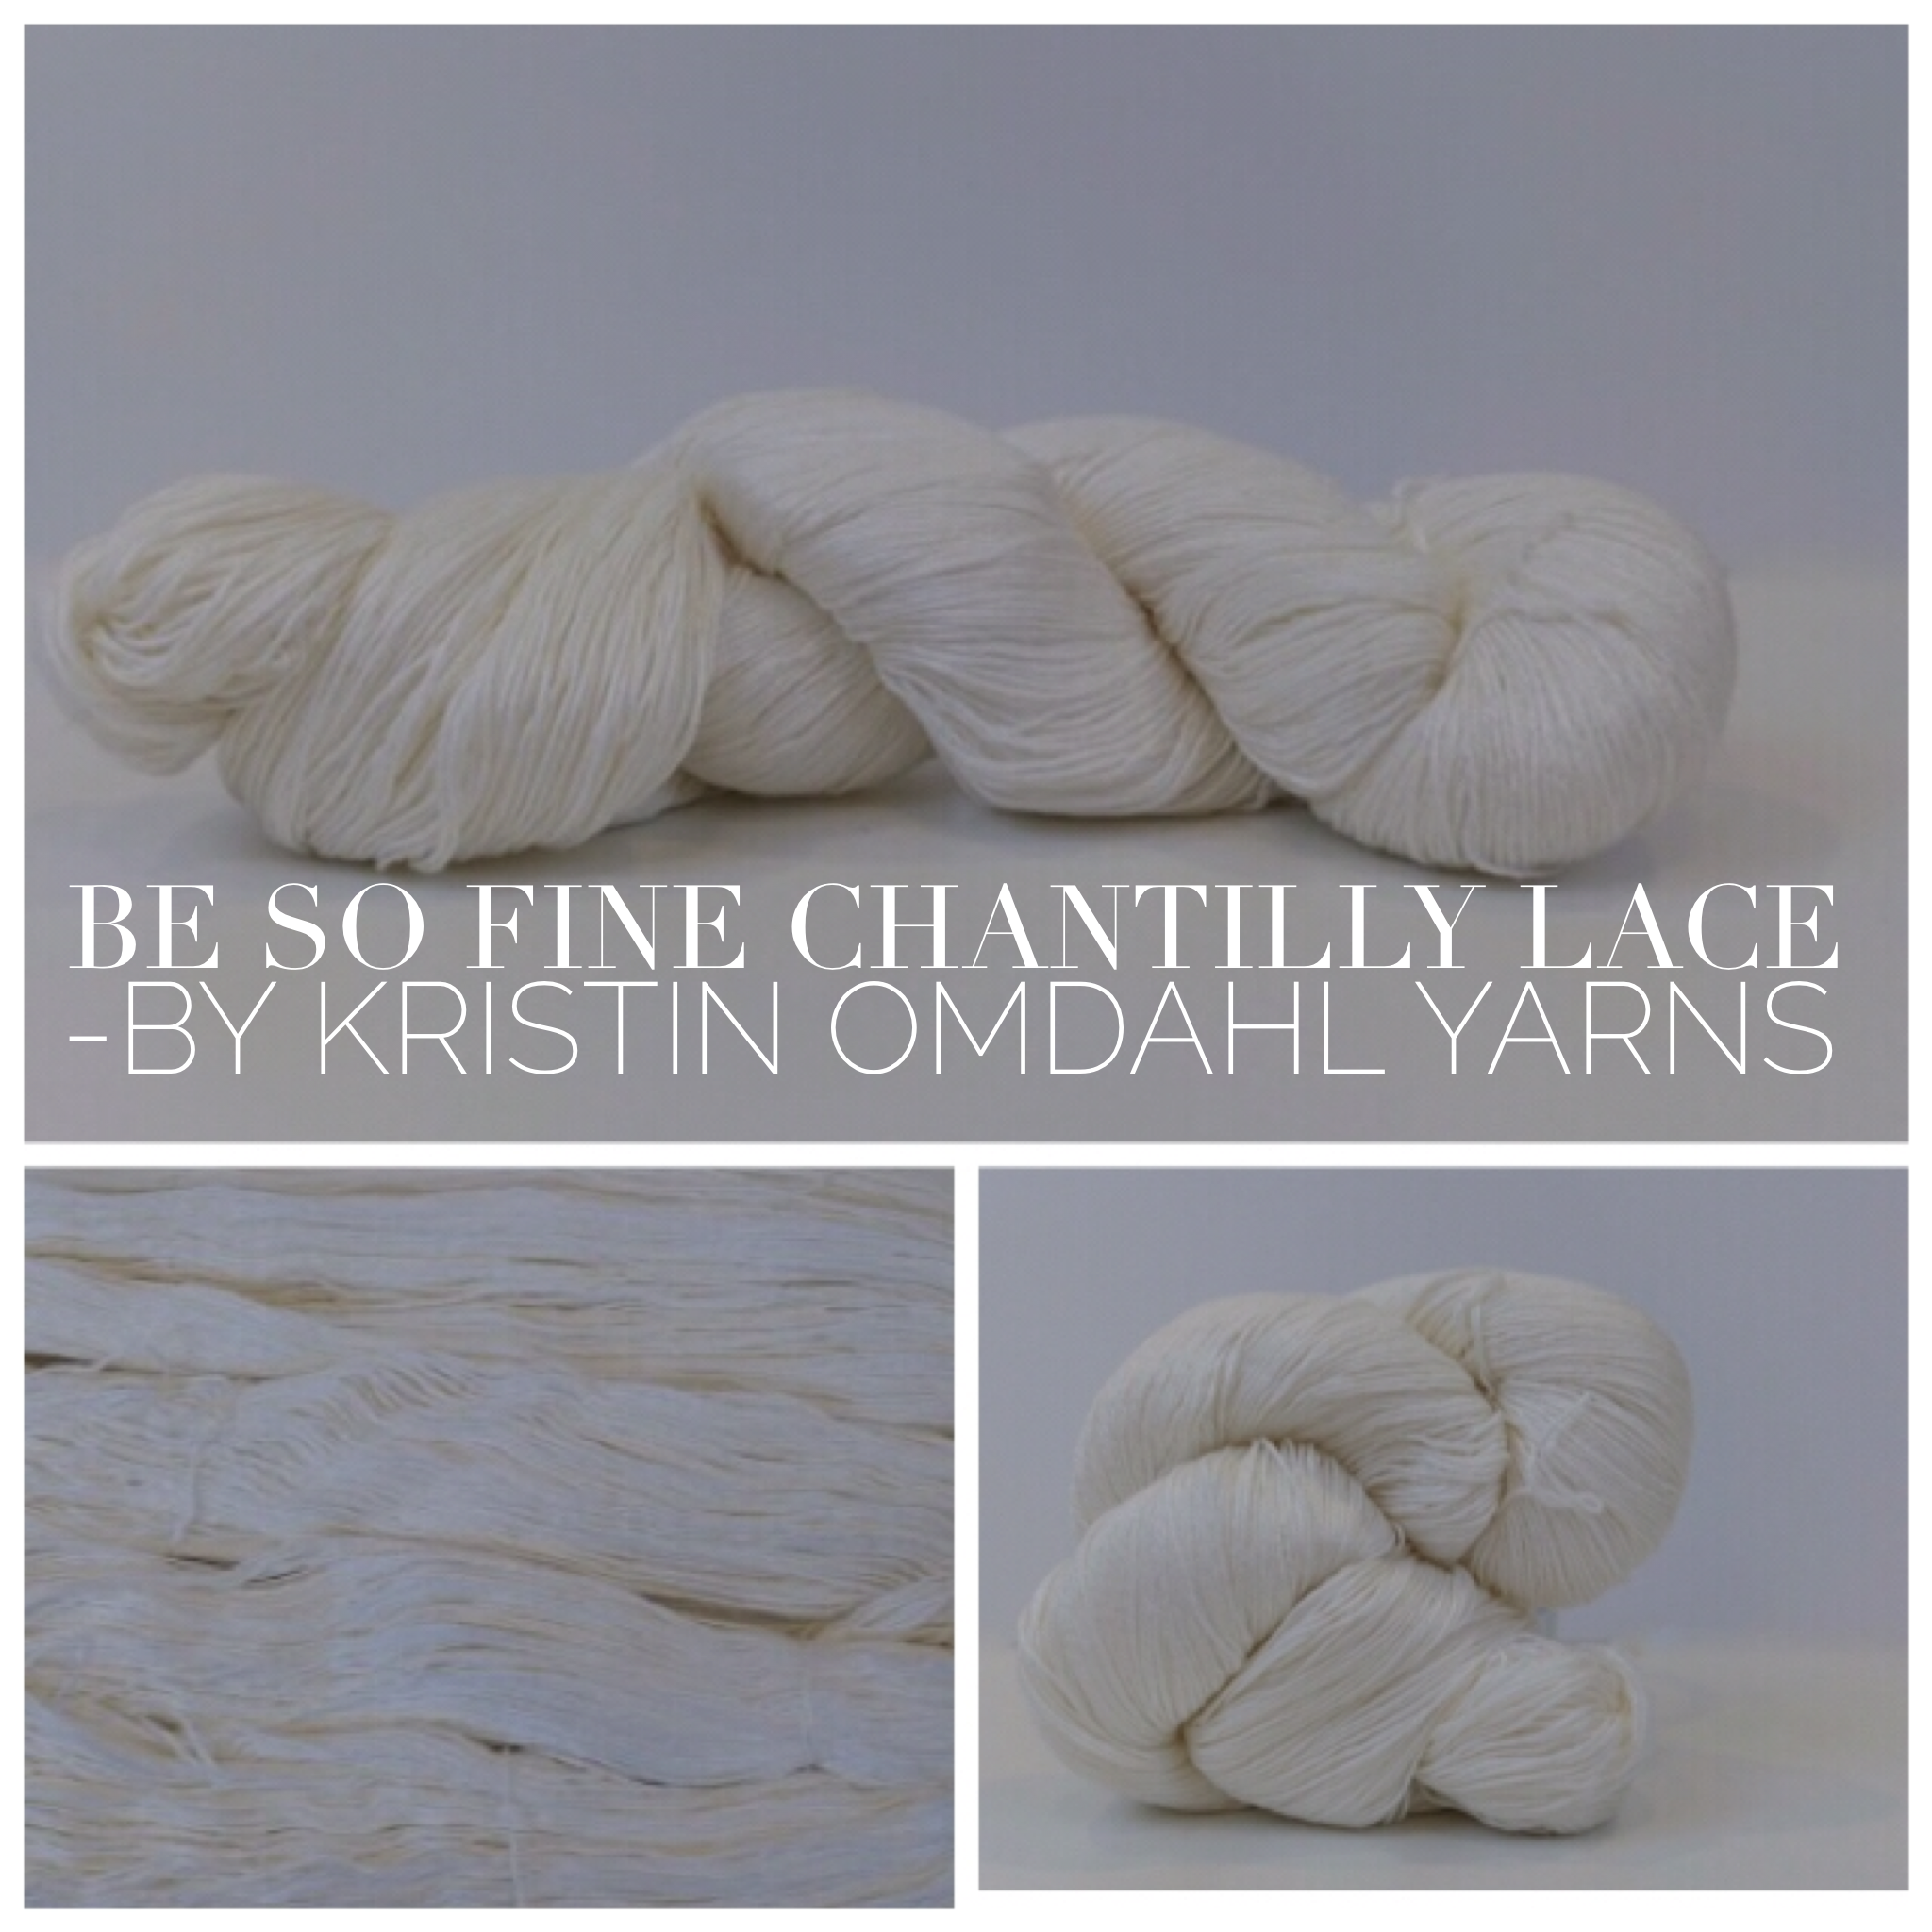 BSF chantilly lace colage.PNG